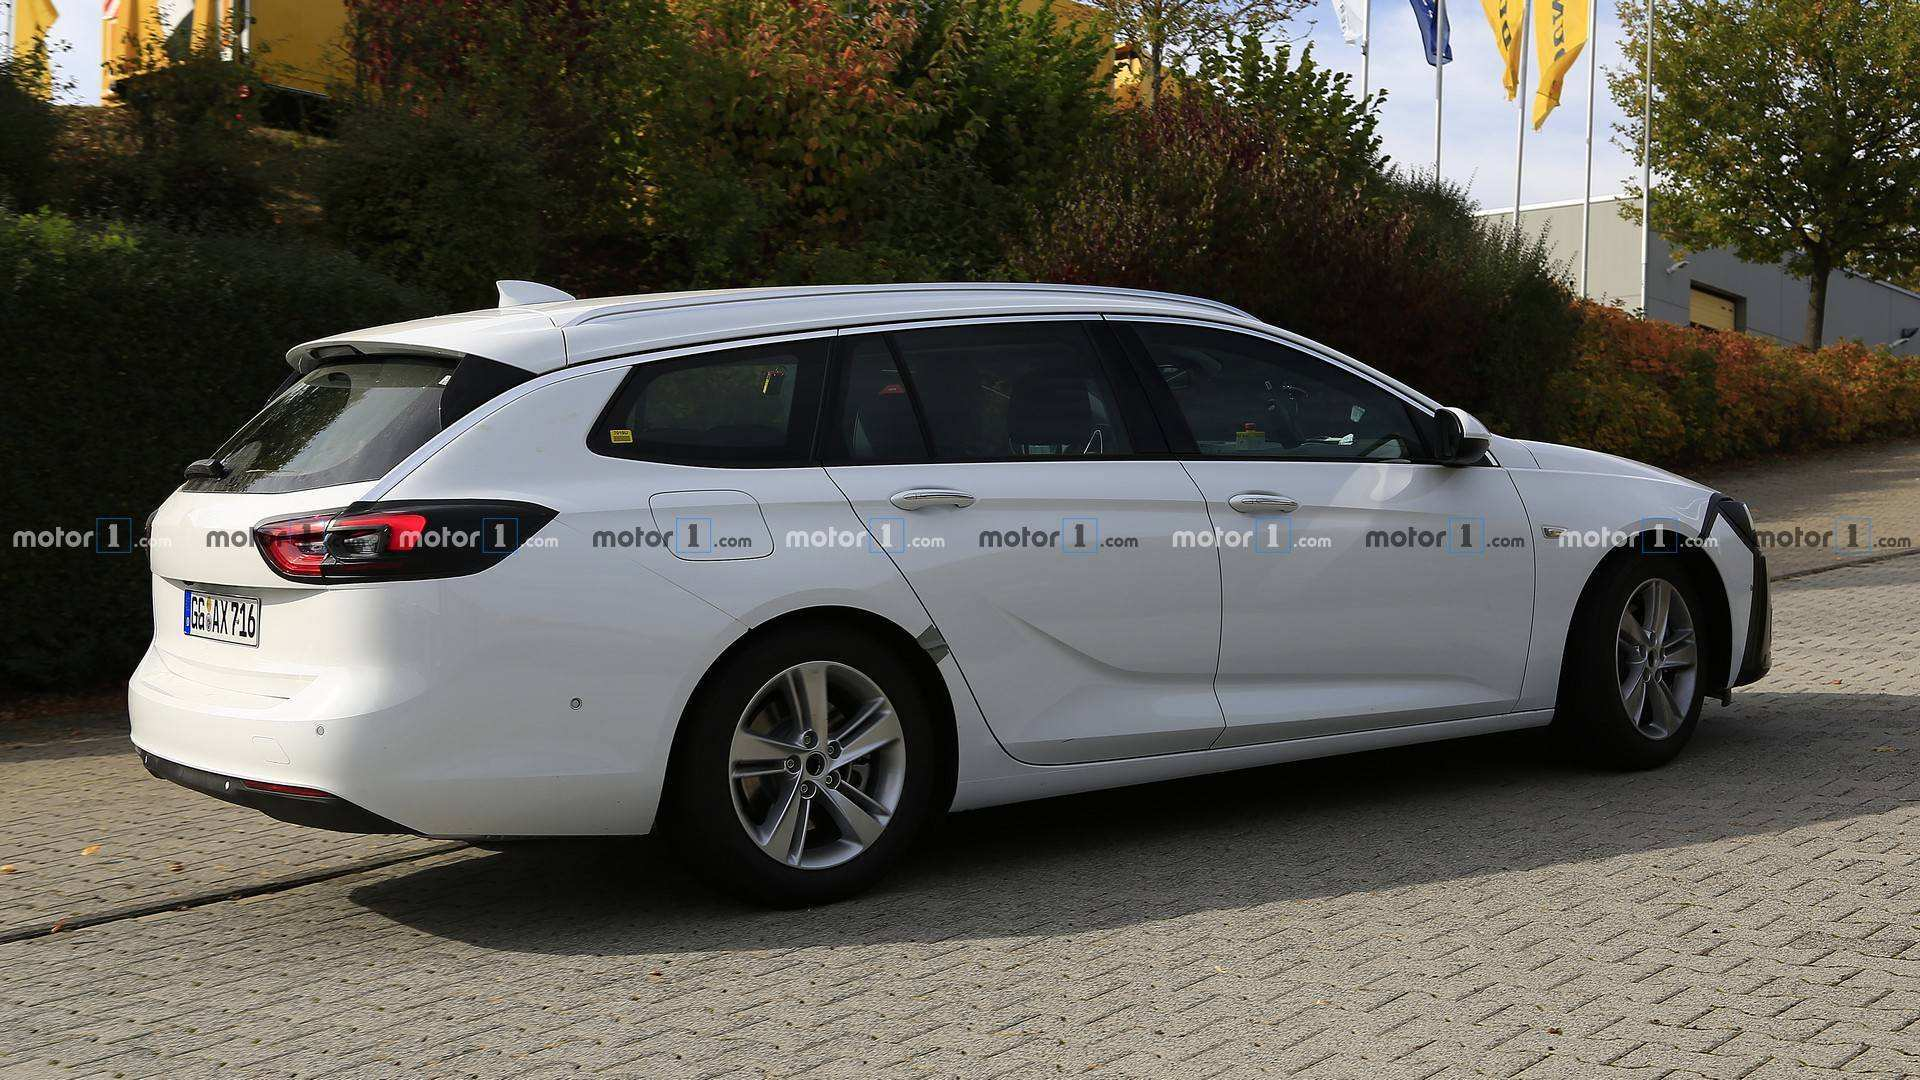 44 New Opel Insignia Facelift 2020 Price